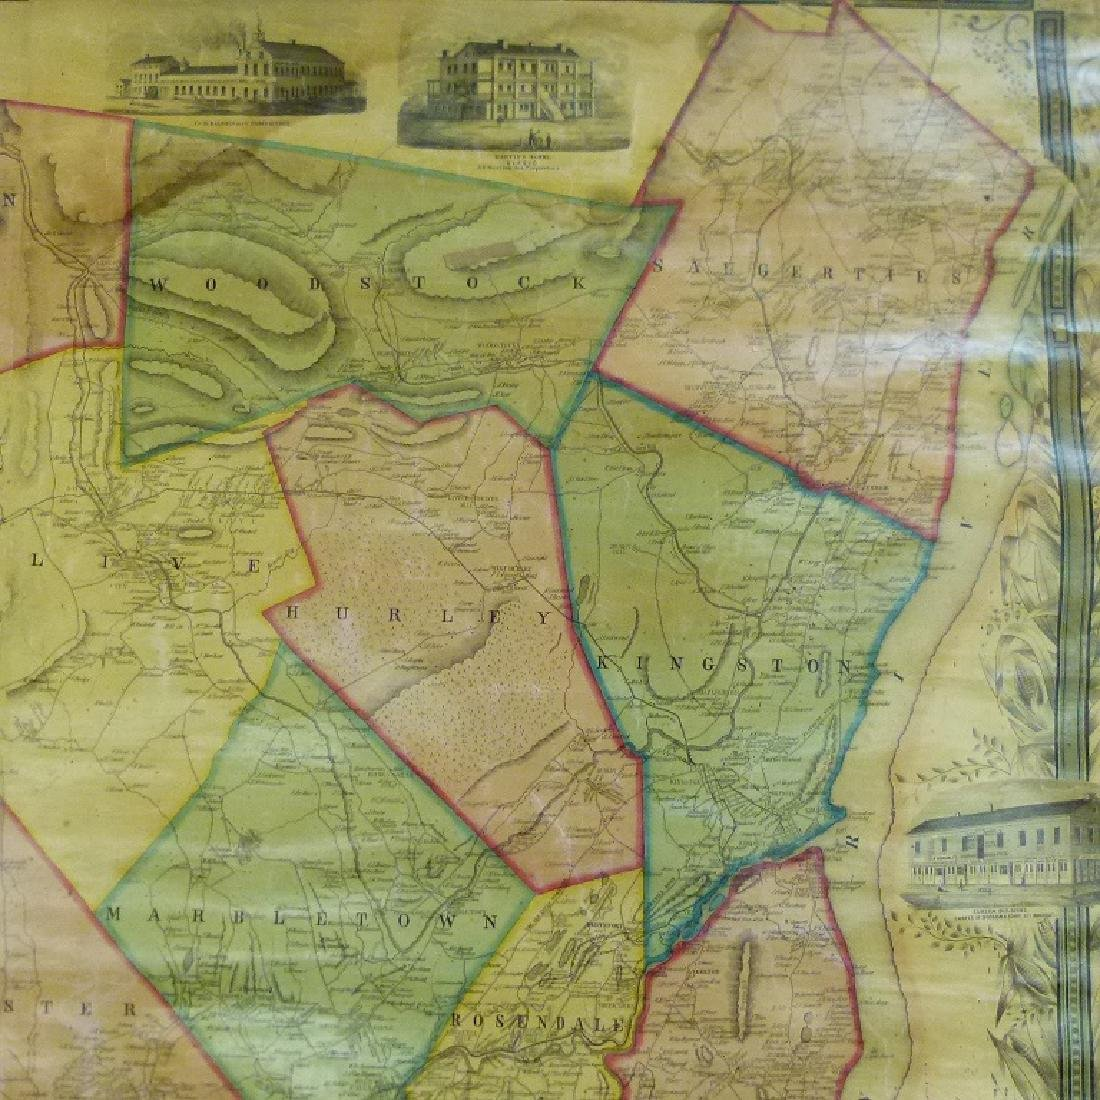 MAP OF ULSTER COUNTY NEW YORK, 1853 - 9